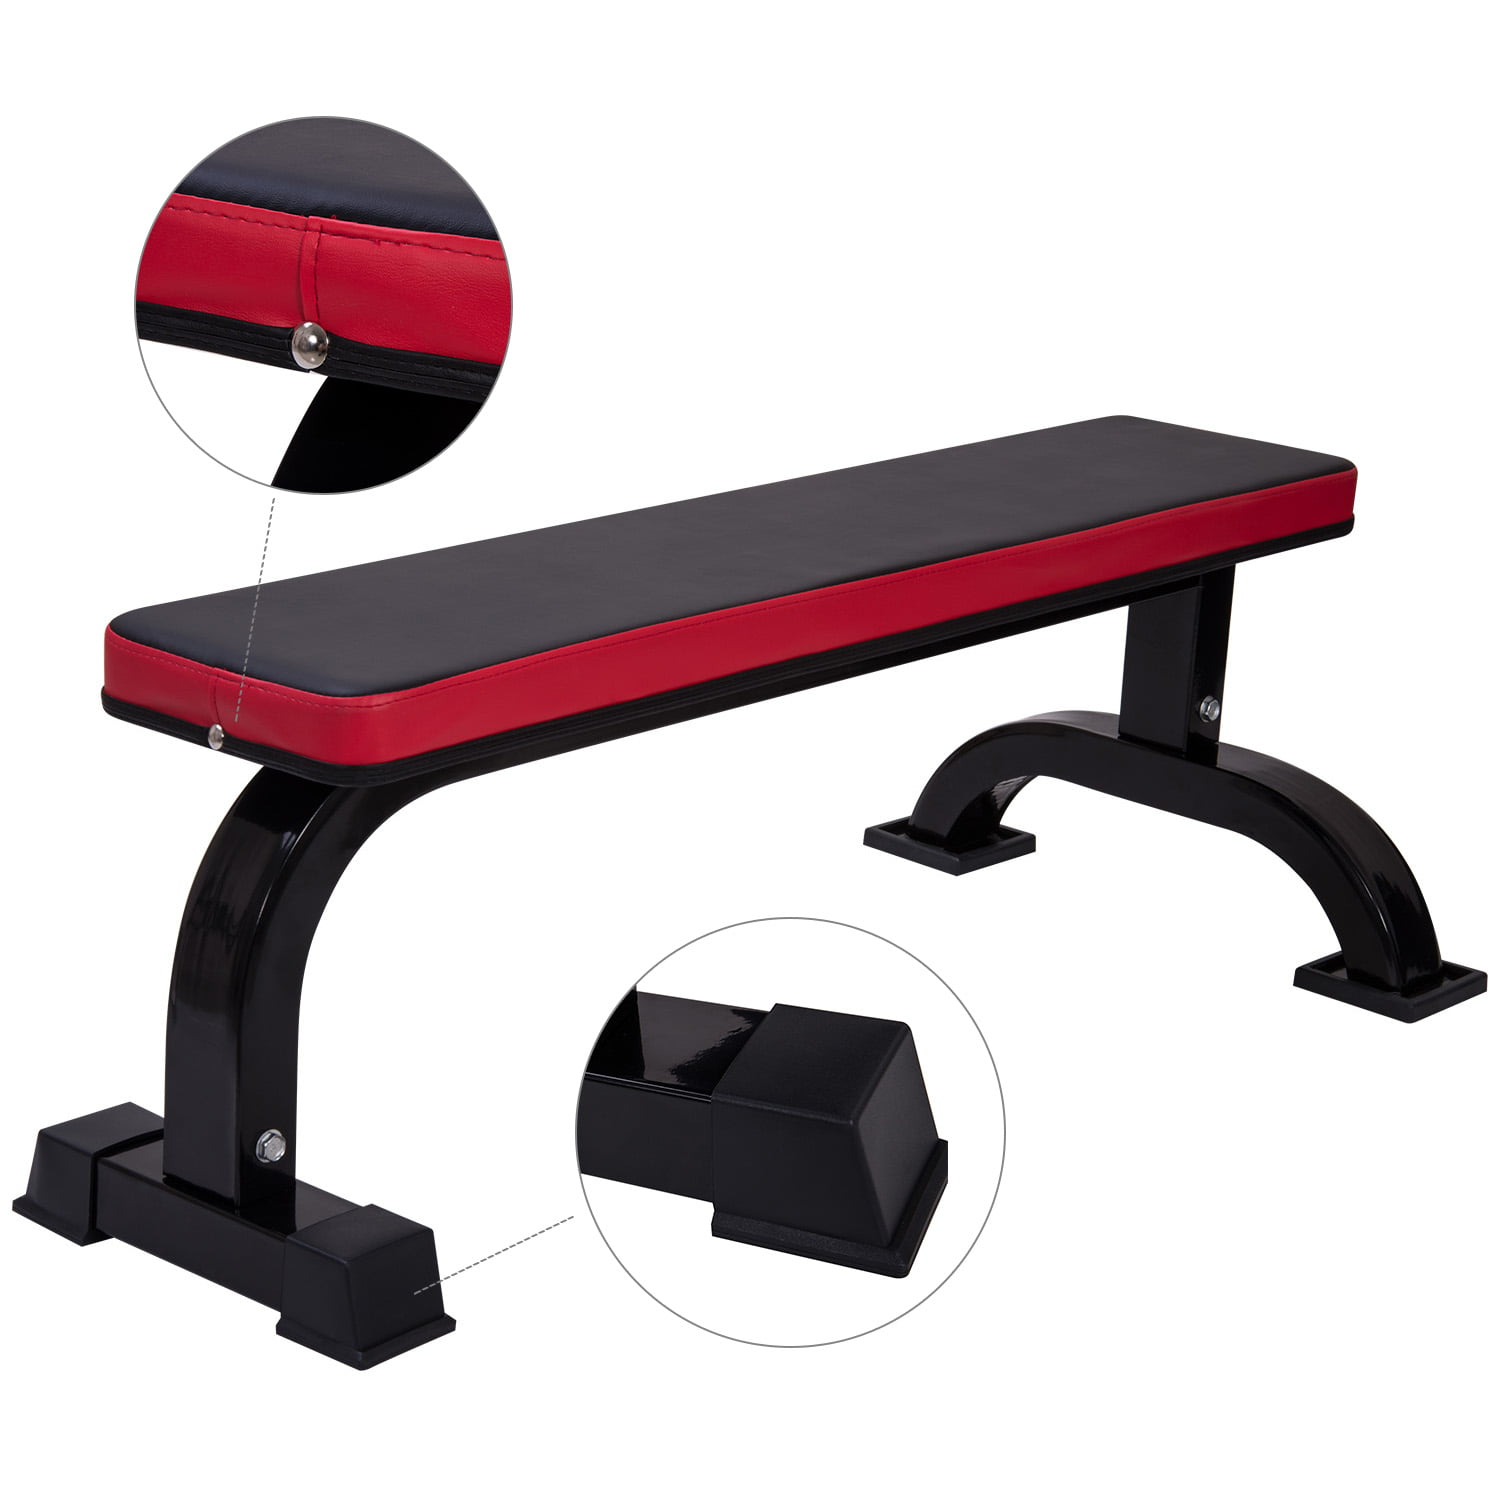 Ollieroo Flat Weight Bench For Weight Lifting Sit Up Bench Strength Training Black Red